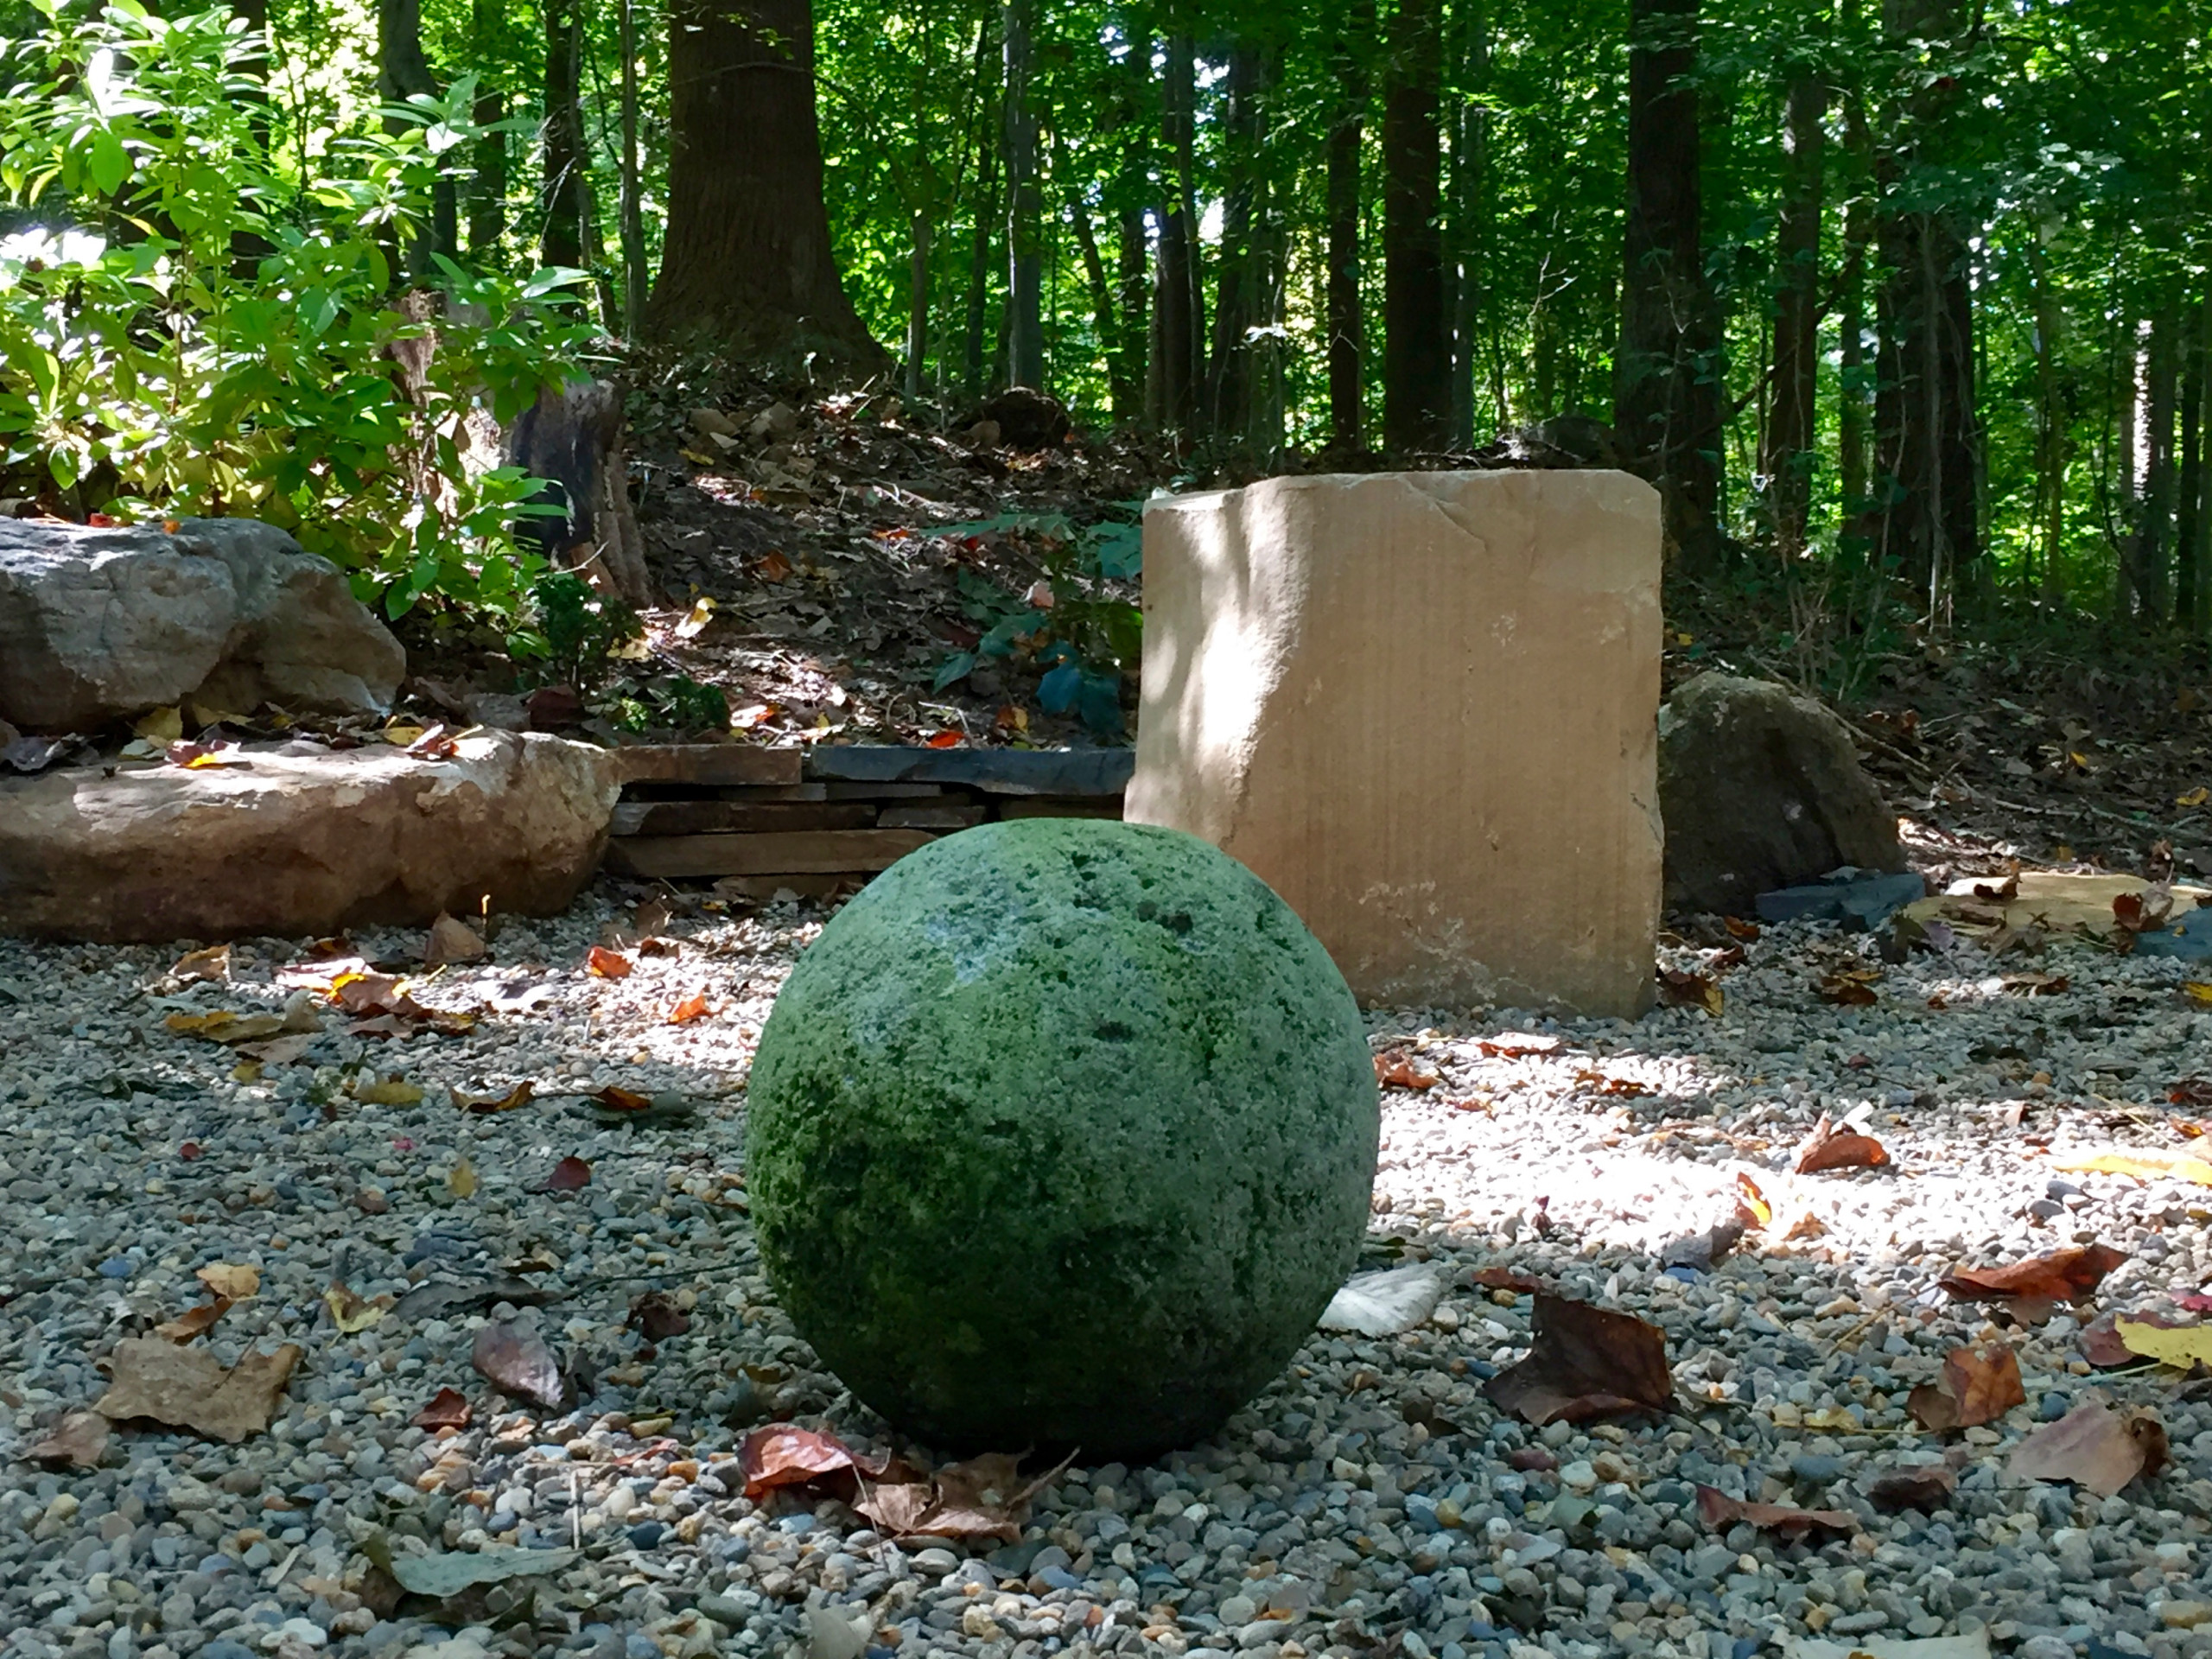 Stone sphere and seating stone